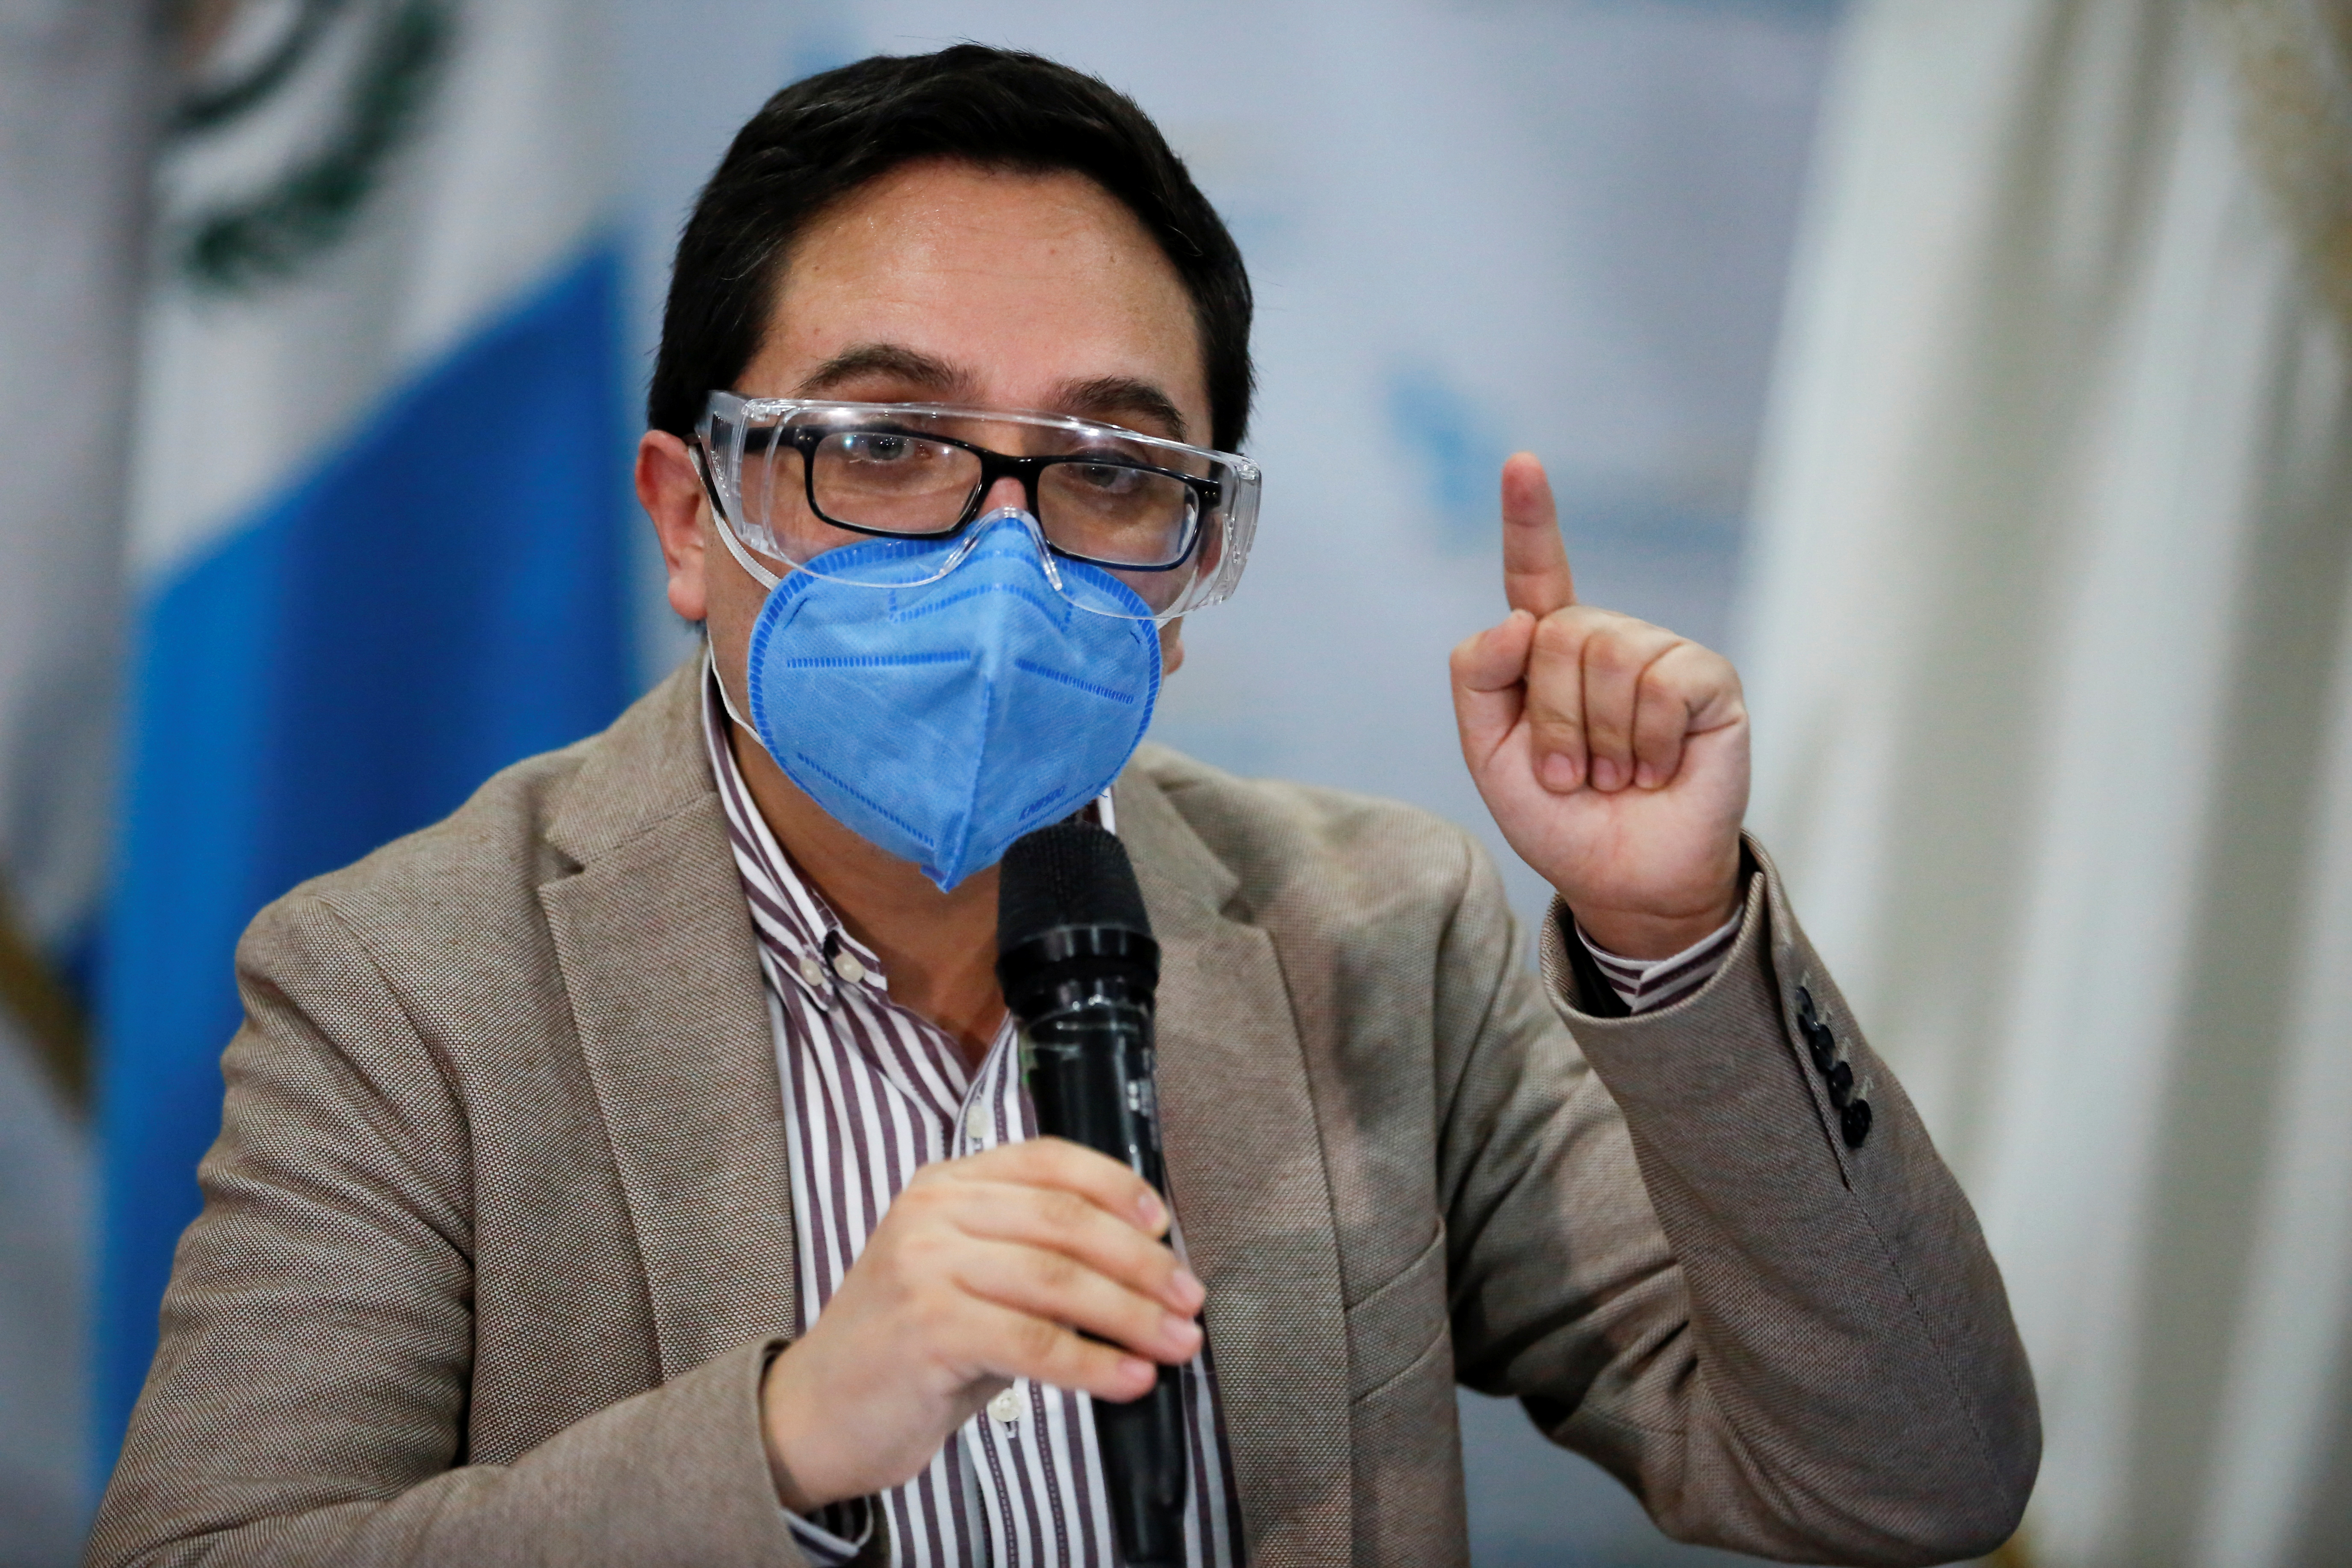 Juan Francisco Sandoval, who was removed by the Guatemala's Attorney General as head of the Special Prosecutor's Office Against Impunity (FECI), speaks during a news conference in Guatemala City, Guatemala July 23, 2021. REUTERS/Luis Echeverria